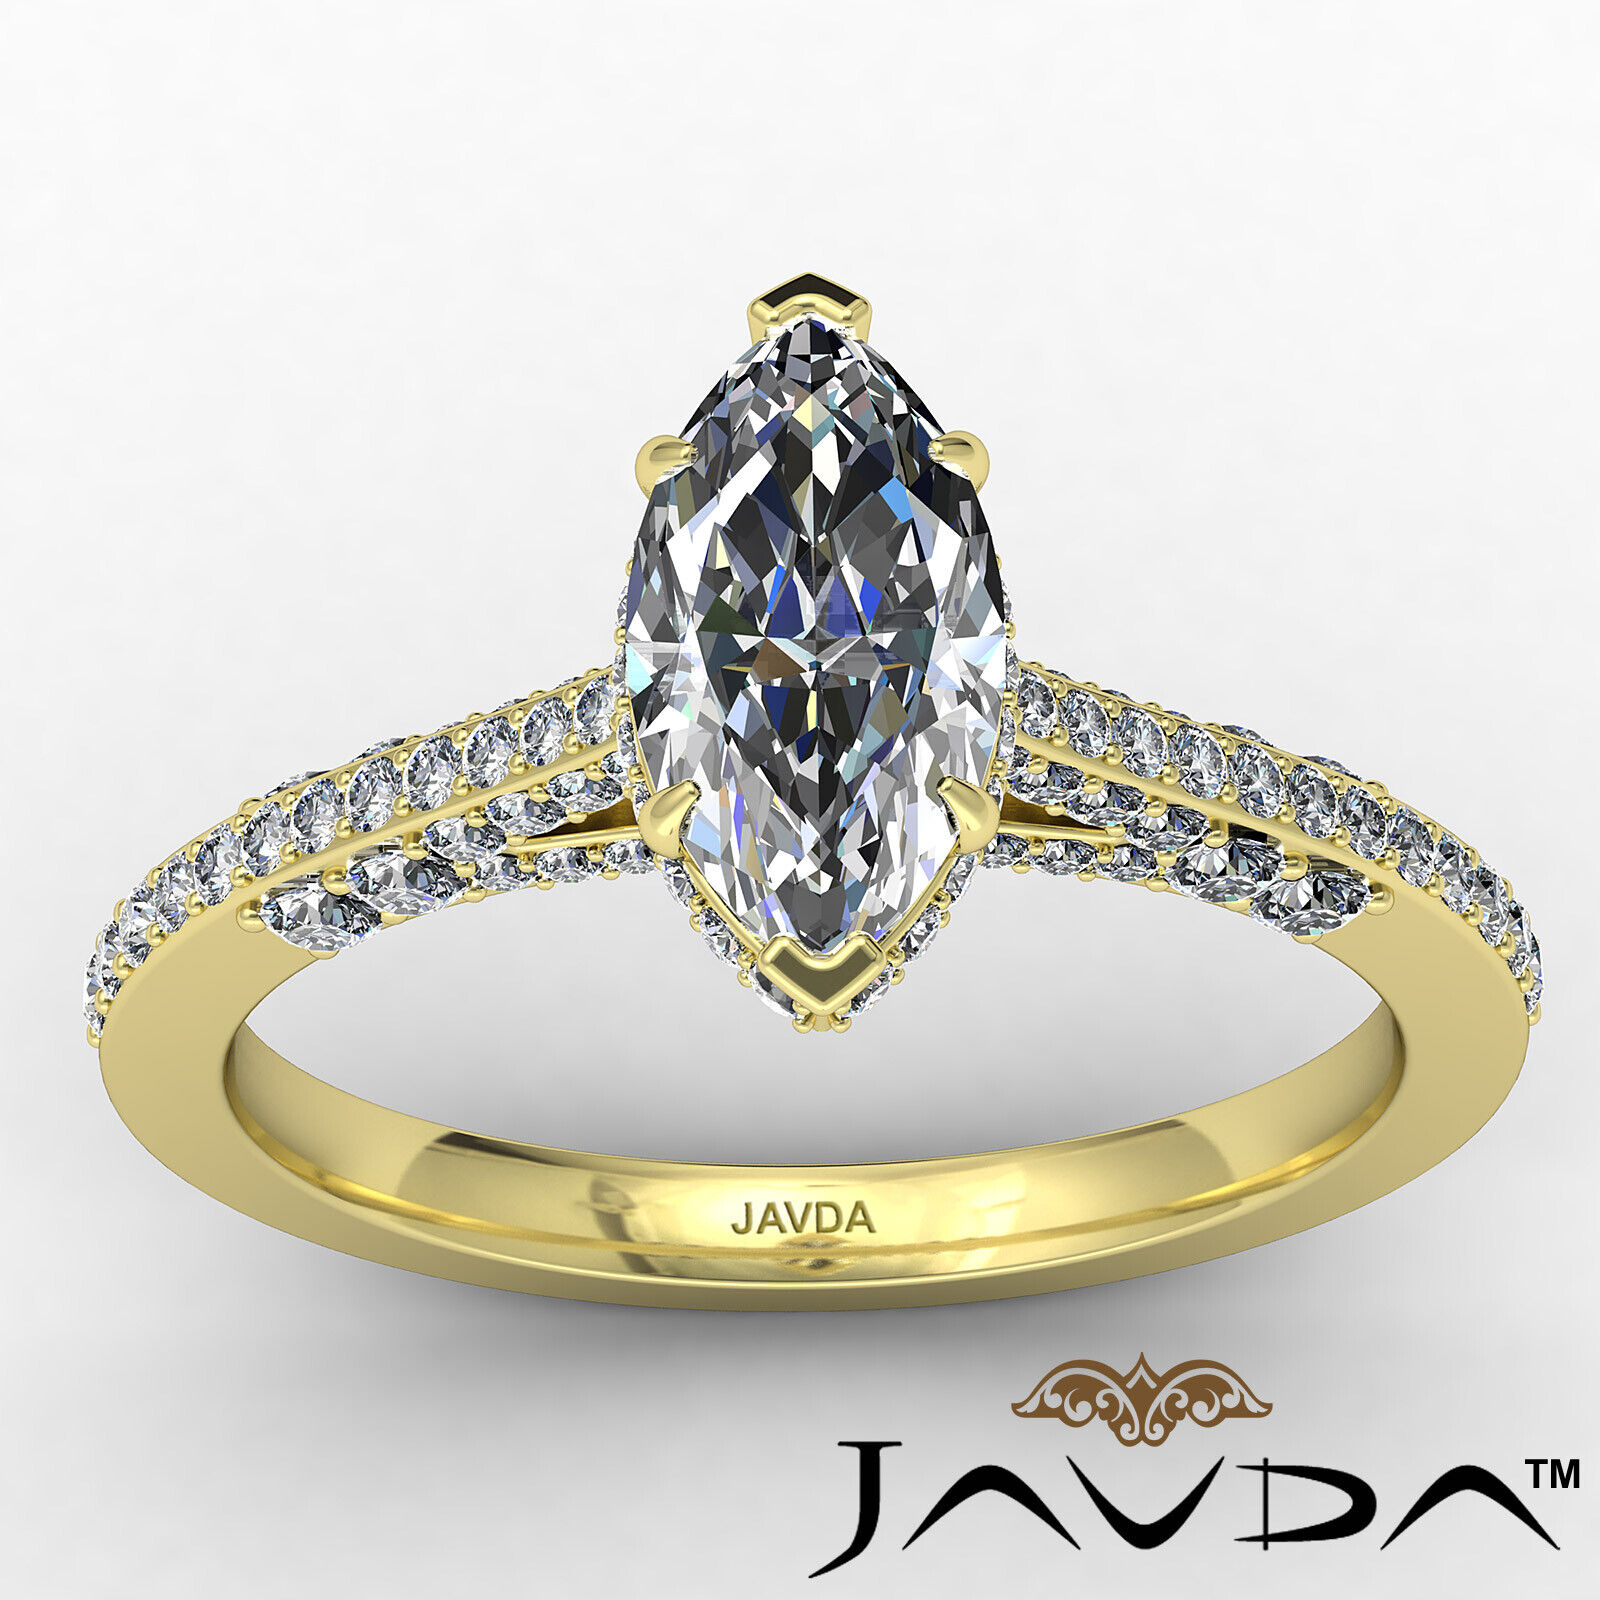 Circa Halo Marquise Diamond Engagement Ring GIA G Color & VVS2 clarity 1.1 ctw 10